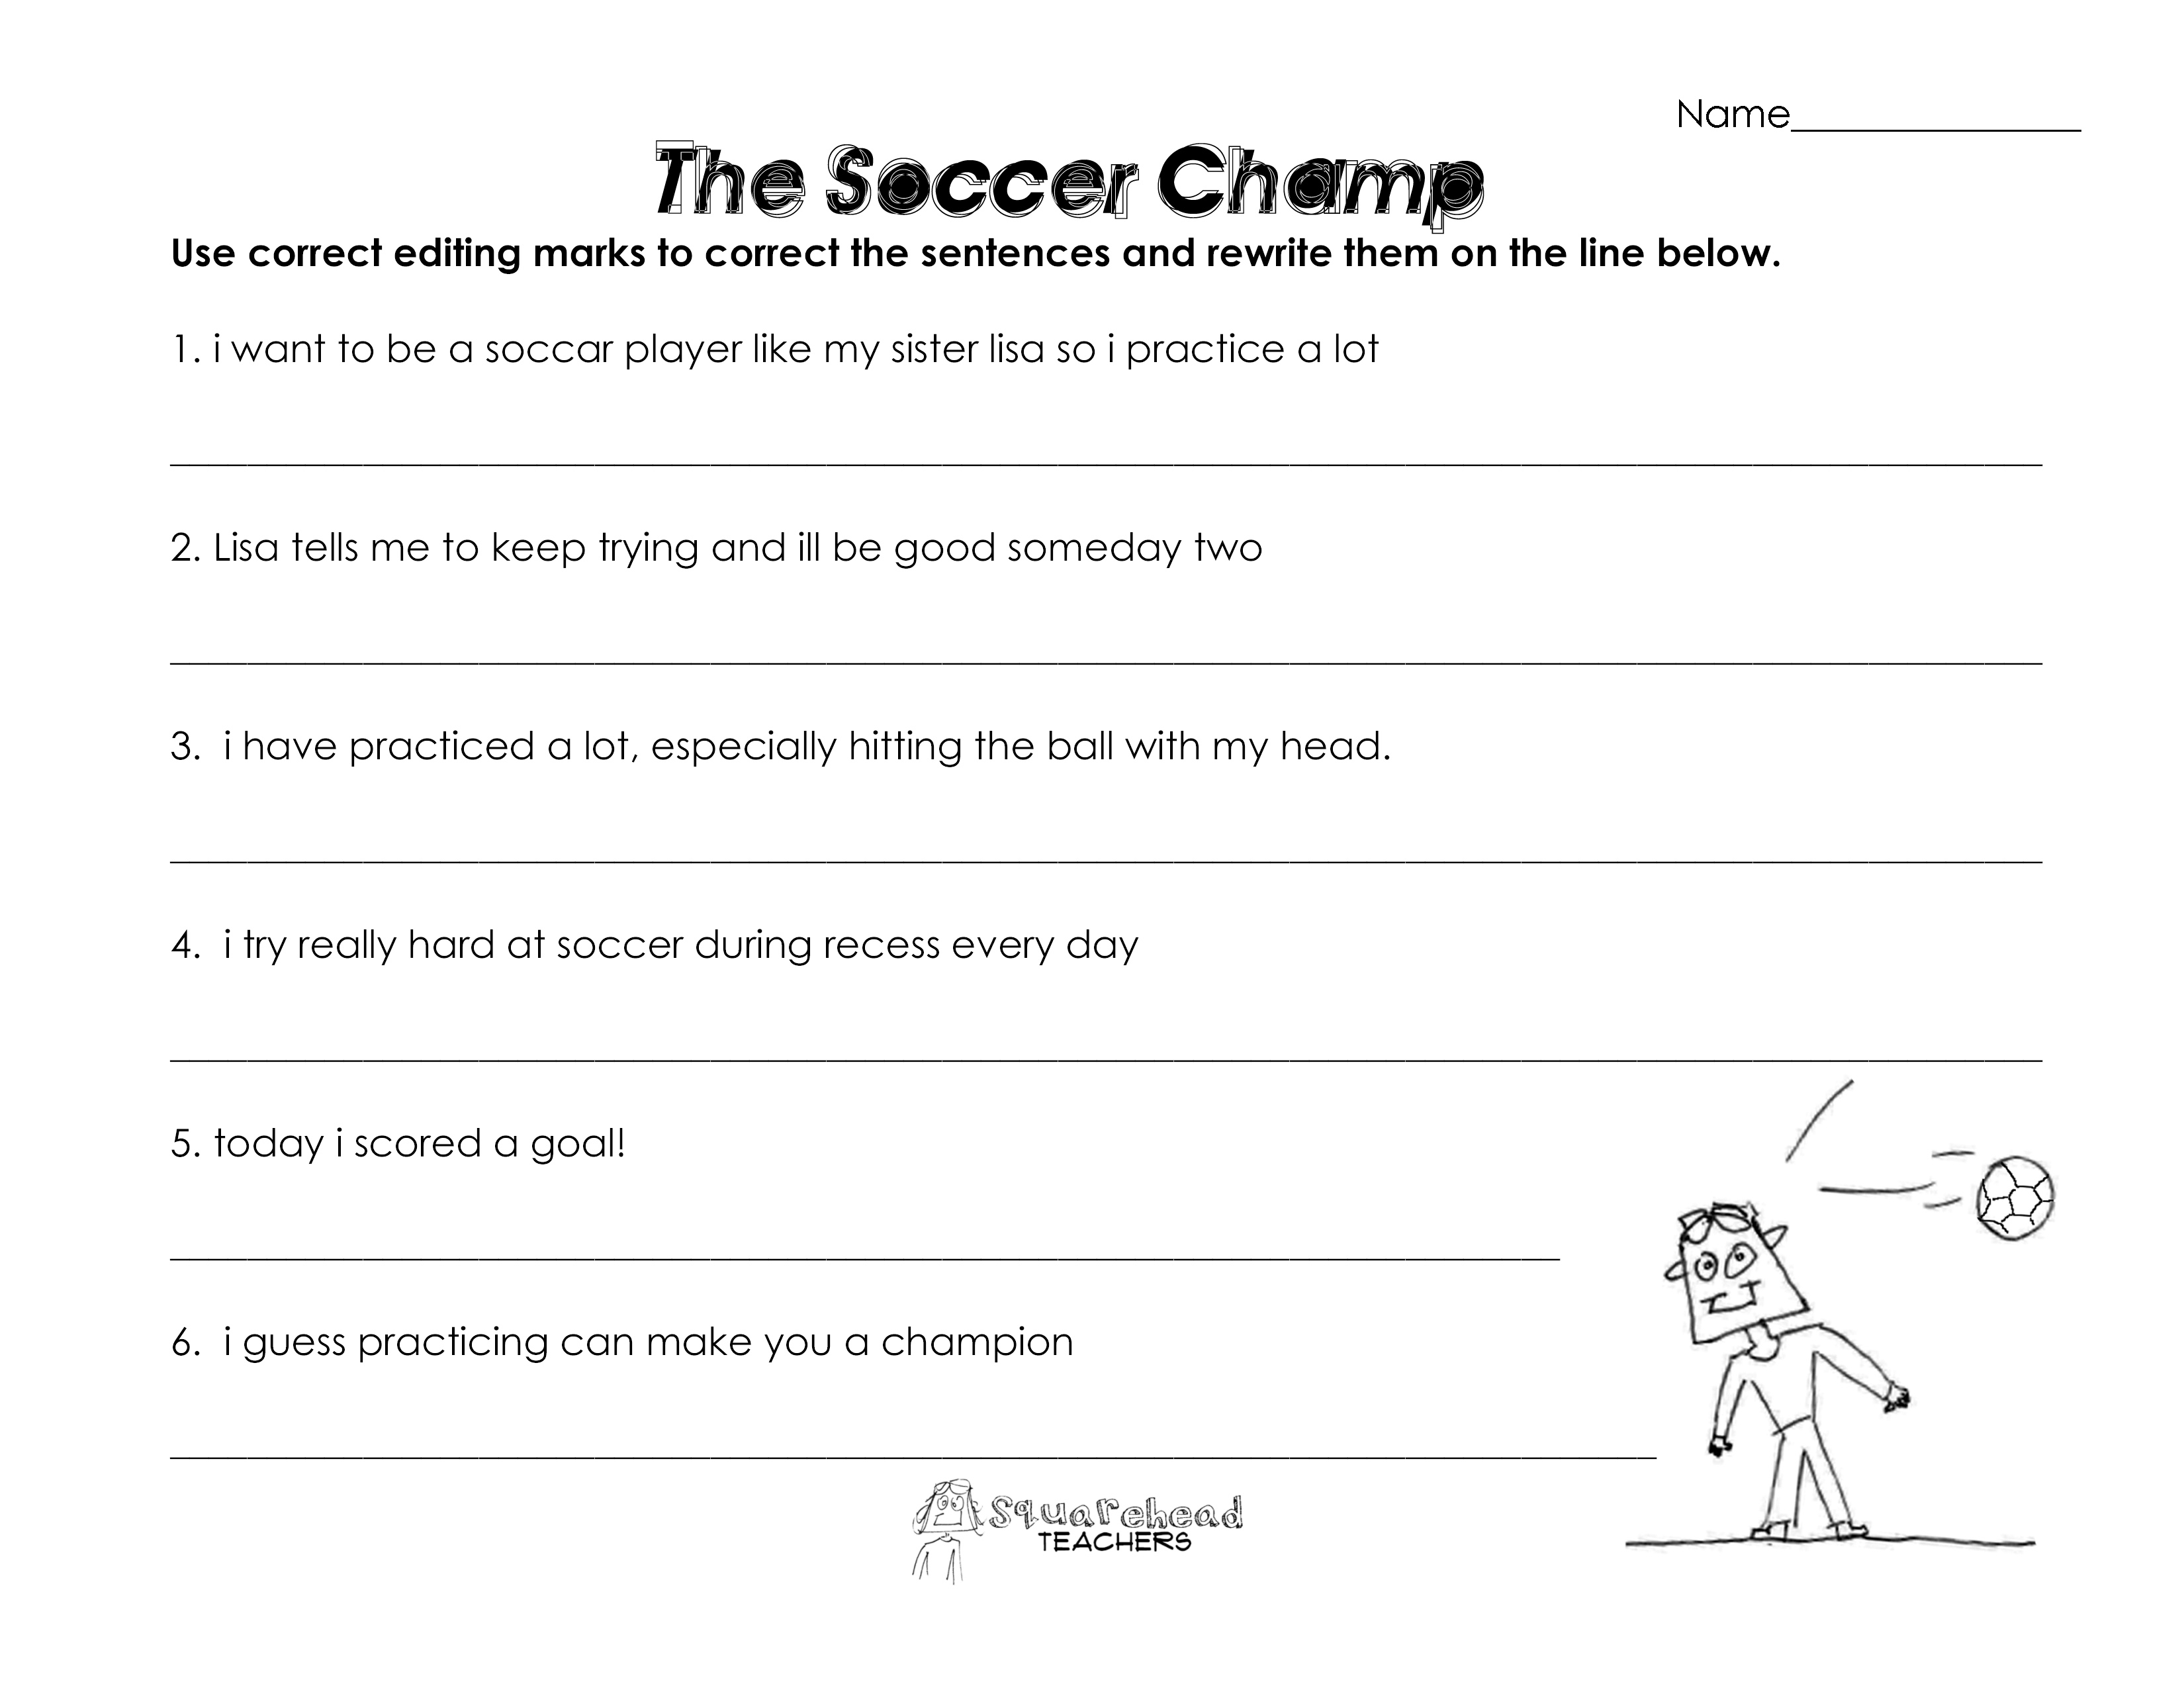 Worksheets Grammer Worksheet the soccer champ grammar worksheet squarehead teachers worksheet